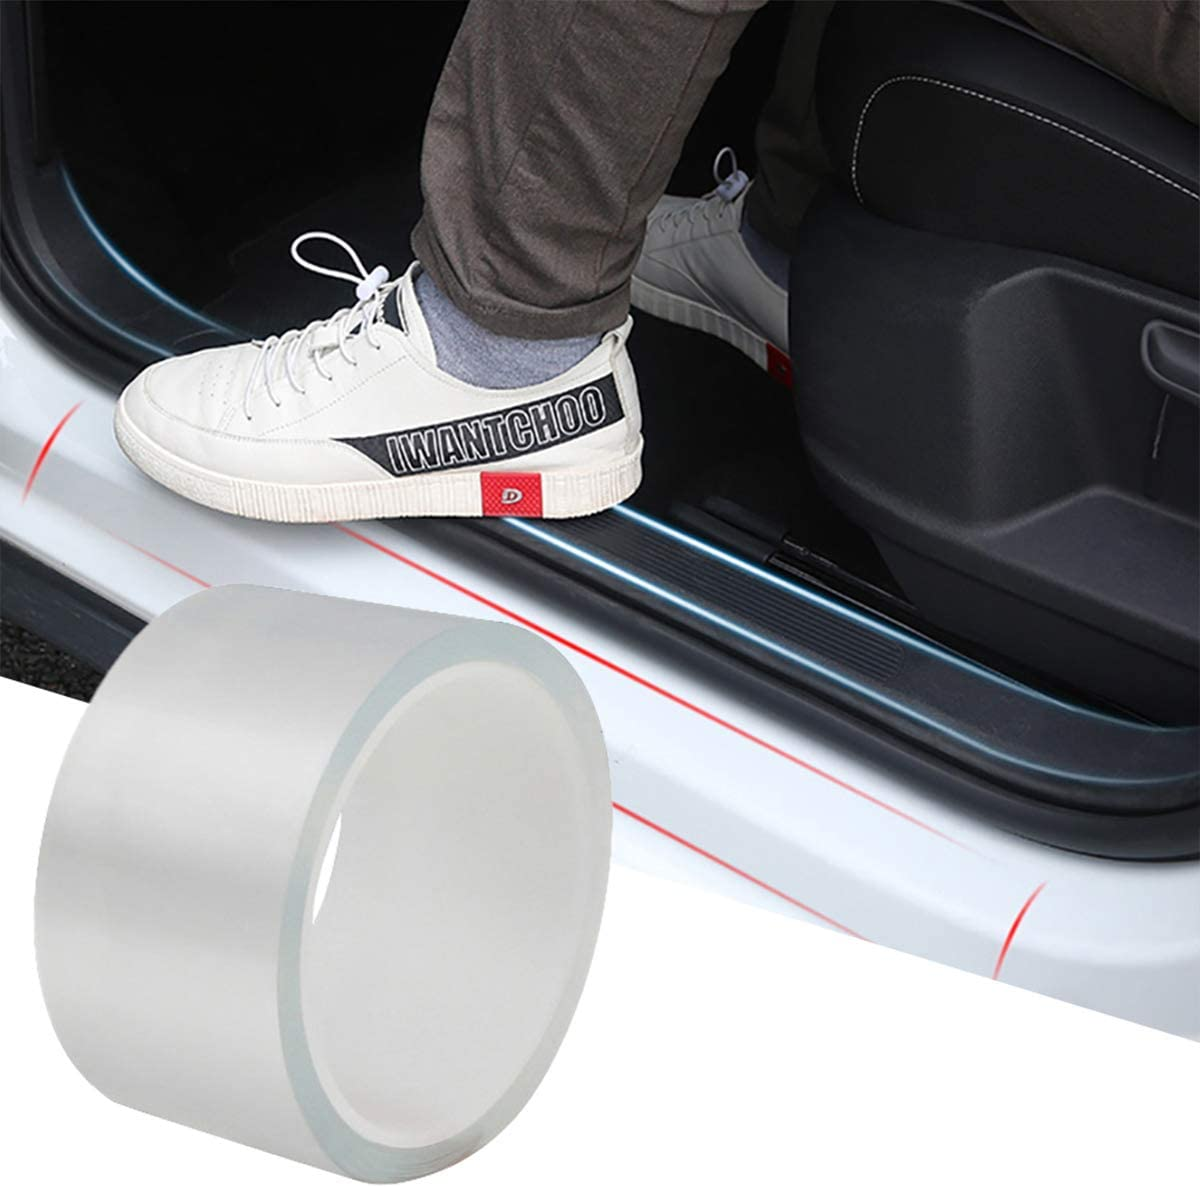 Car Door Edge Guards Clear Car Door Protector Universal Door Sill Protector Car Door Anti-Collision Front Rear Door Entry Sill Guard Scuff Plate Fits for Most Car 4In x 33Ft, Transparent